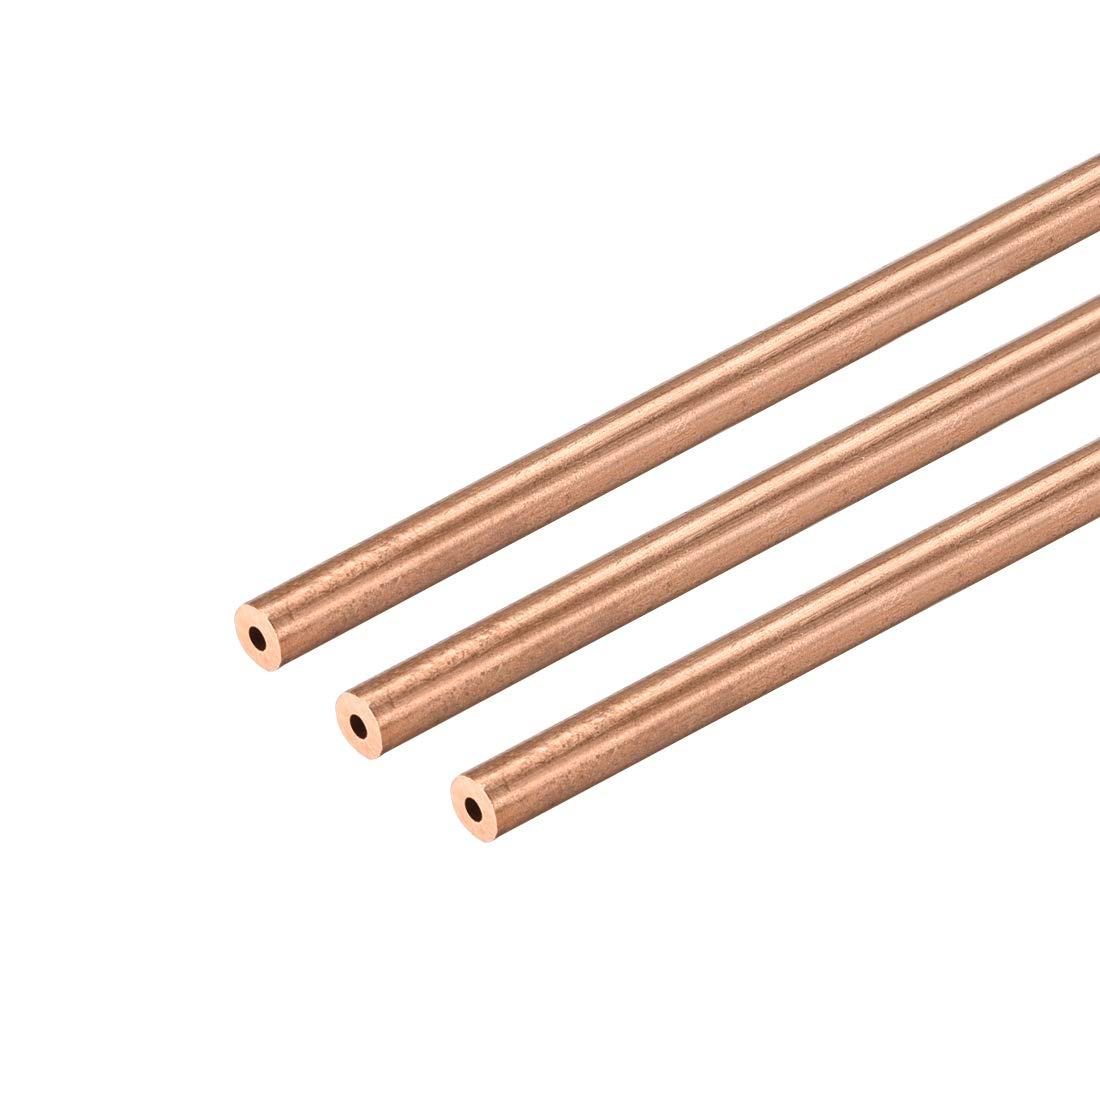 uxcell Copper Round Tube 9mm OD 1mm Wall Thickness 300mm Long Hollow Straight Pipe Tubing 3 Pcs